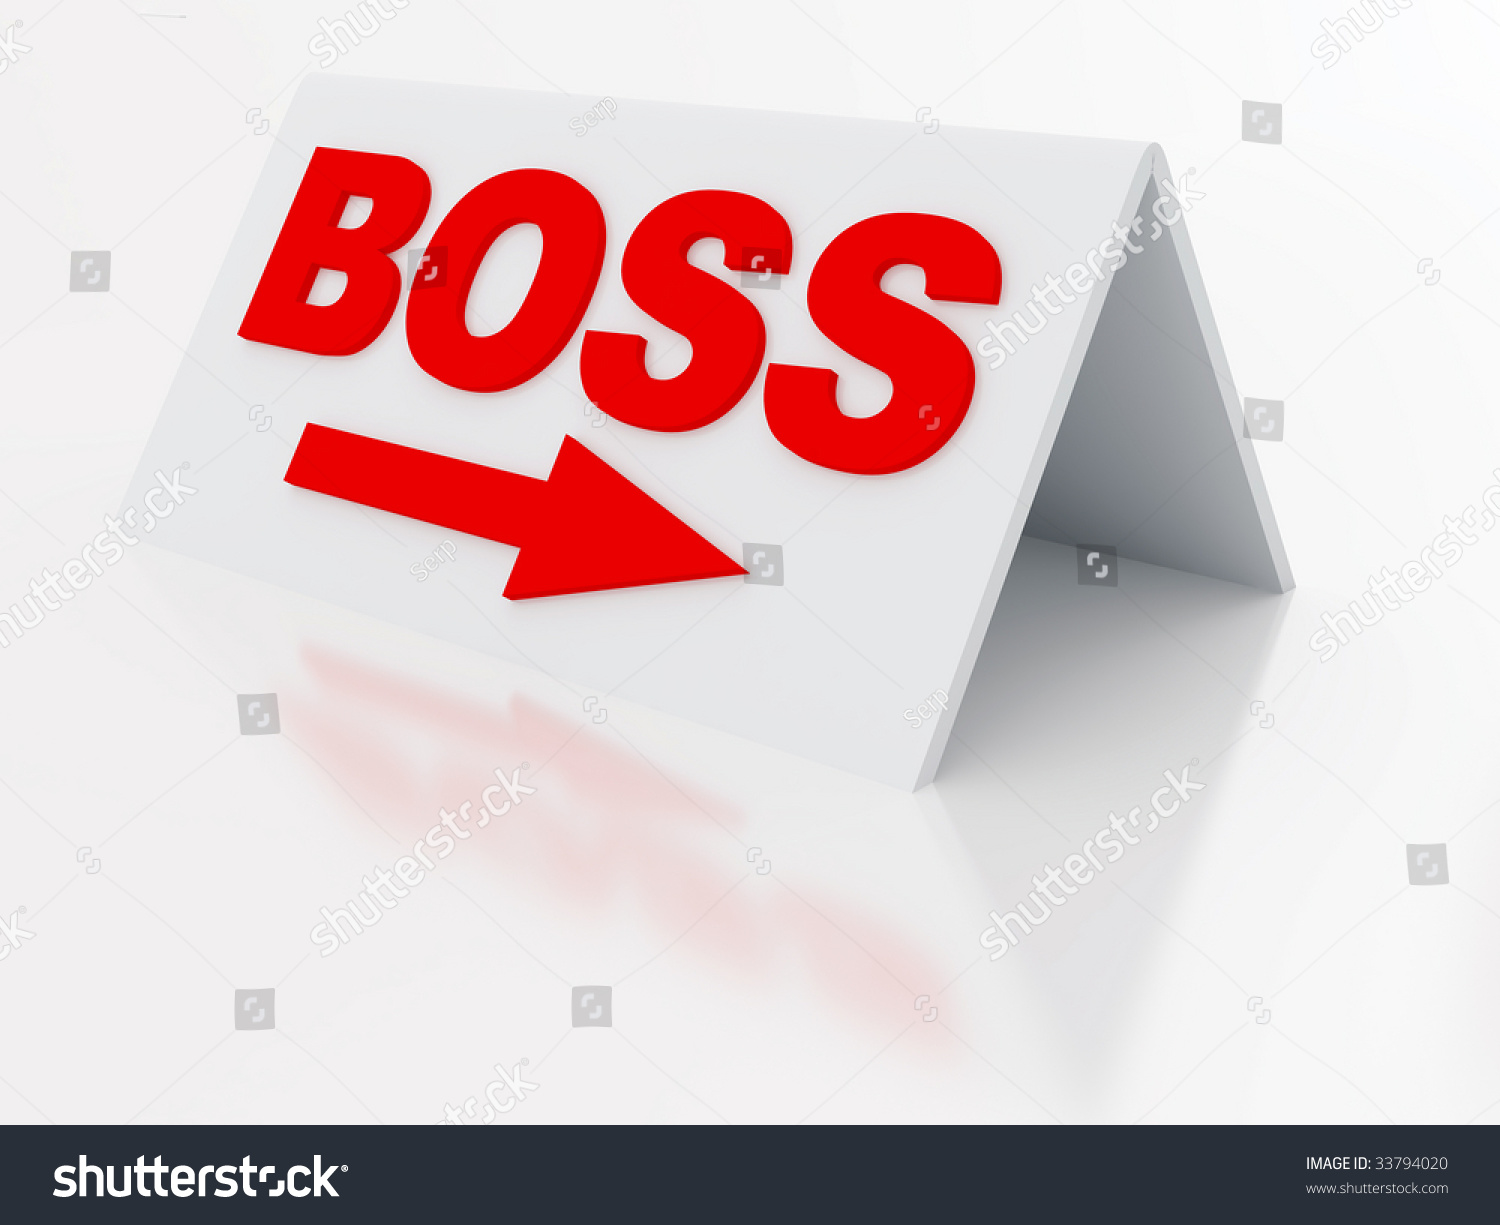 Boss | Definition of Boss by Merriam-Webster